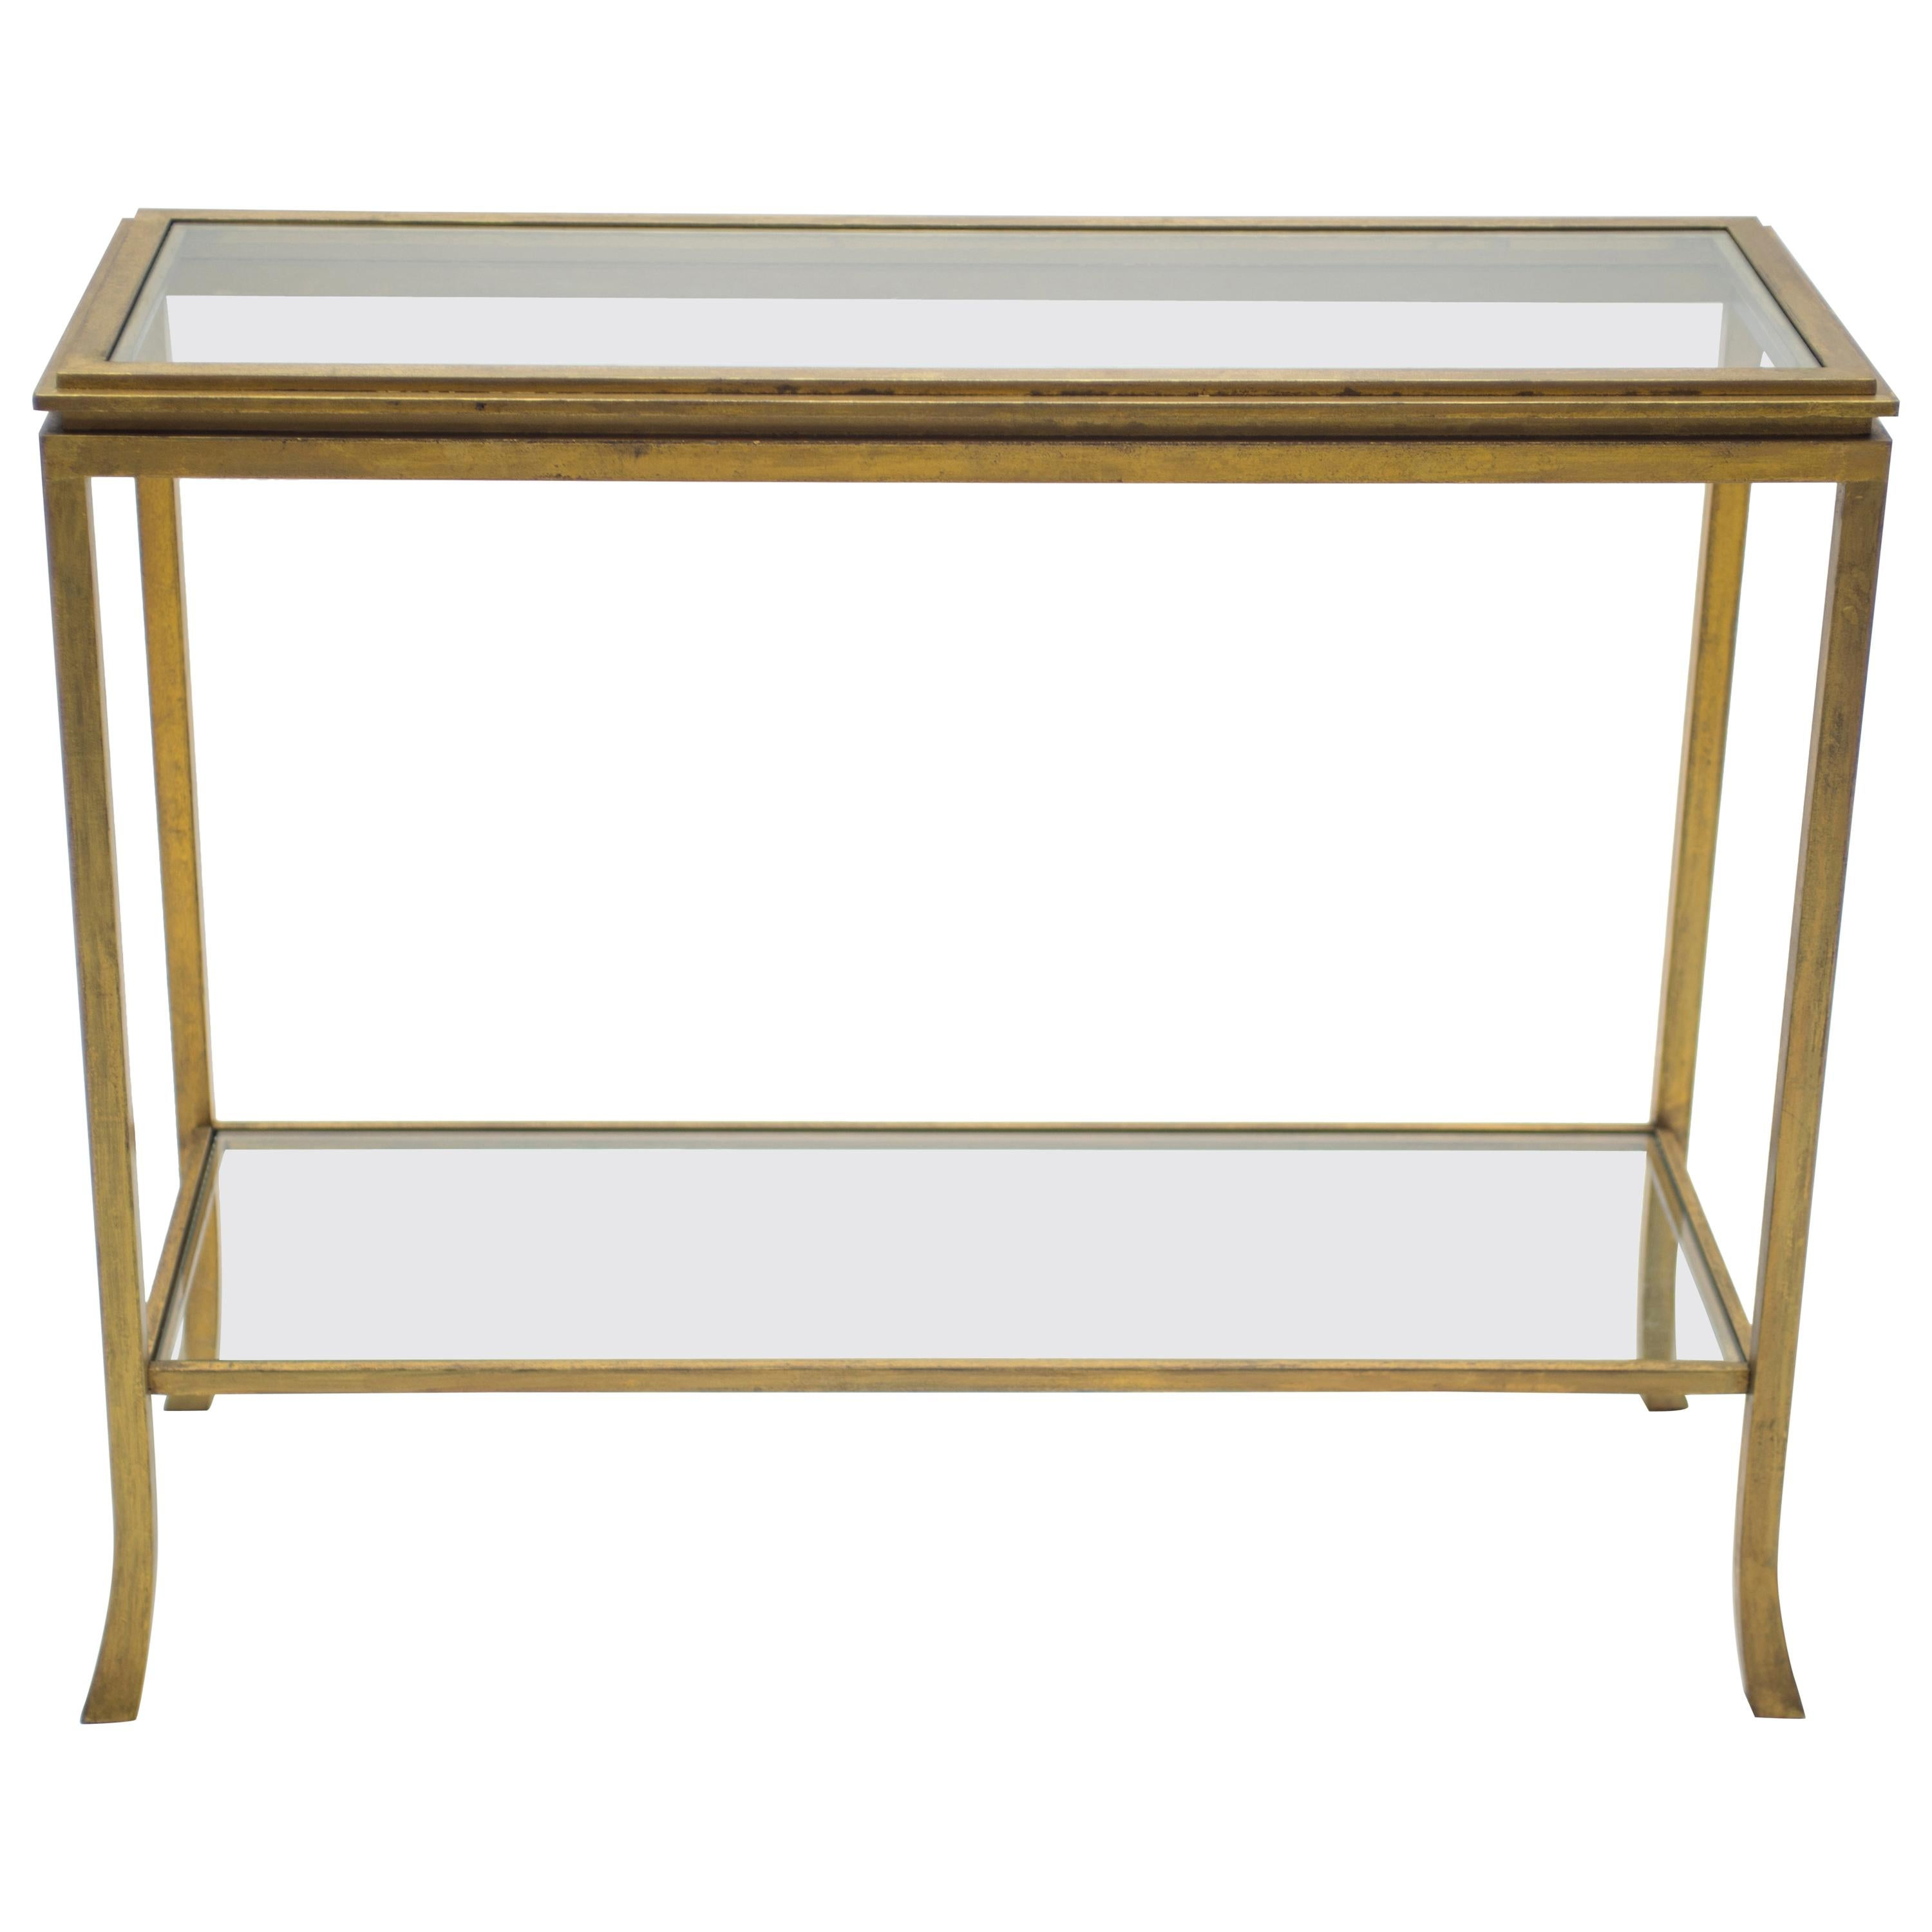 Rare Midcentury Robert Thibier Gilt Wrought Iron Gold Leaf Console Table,  1960s